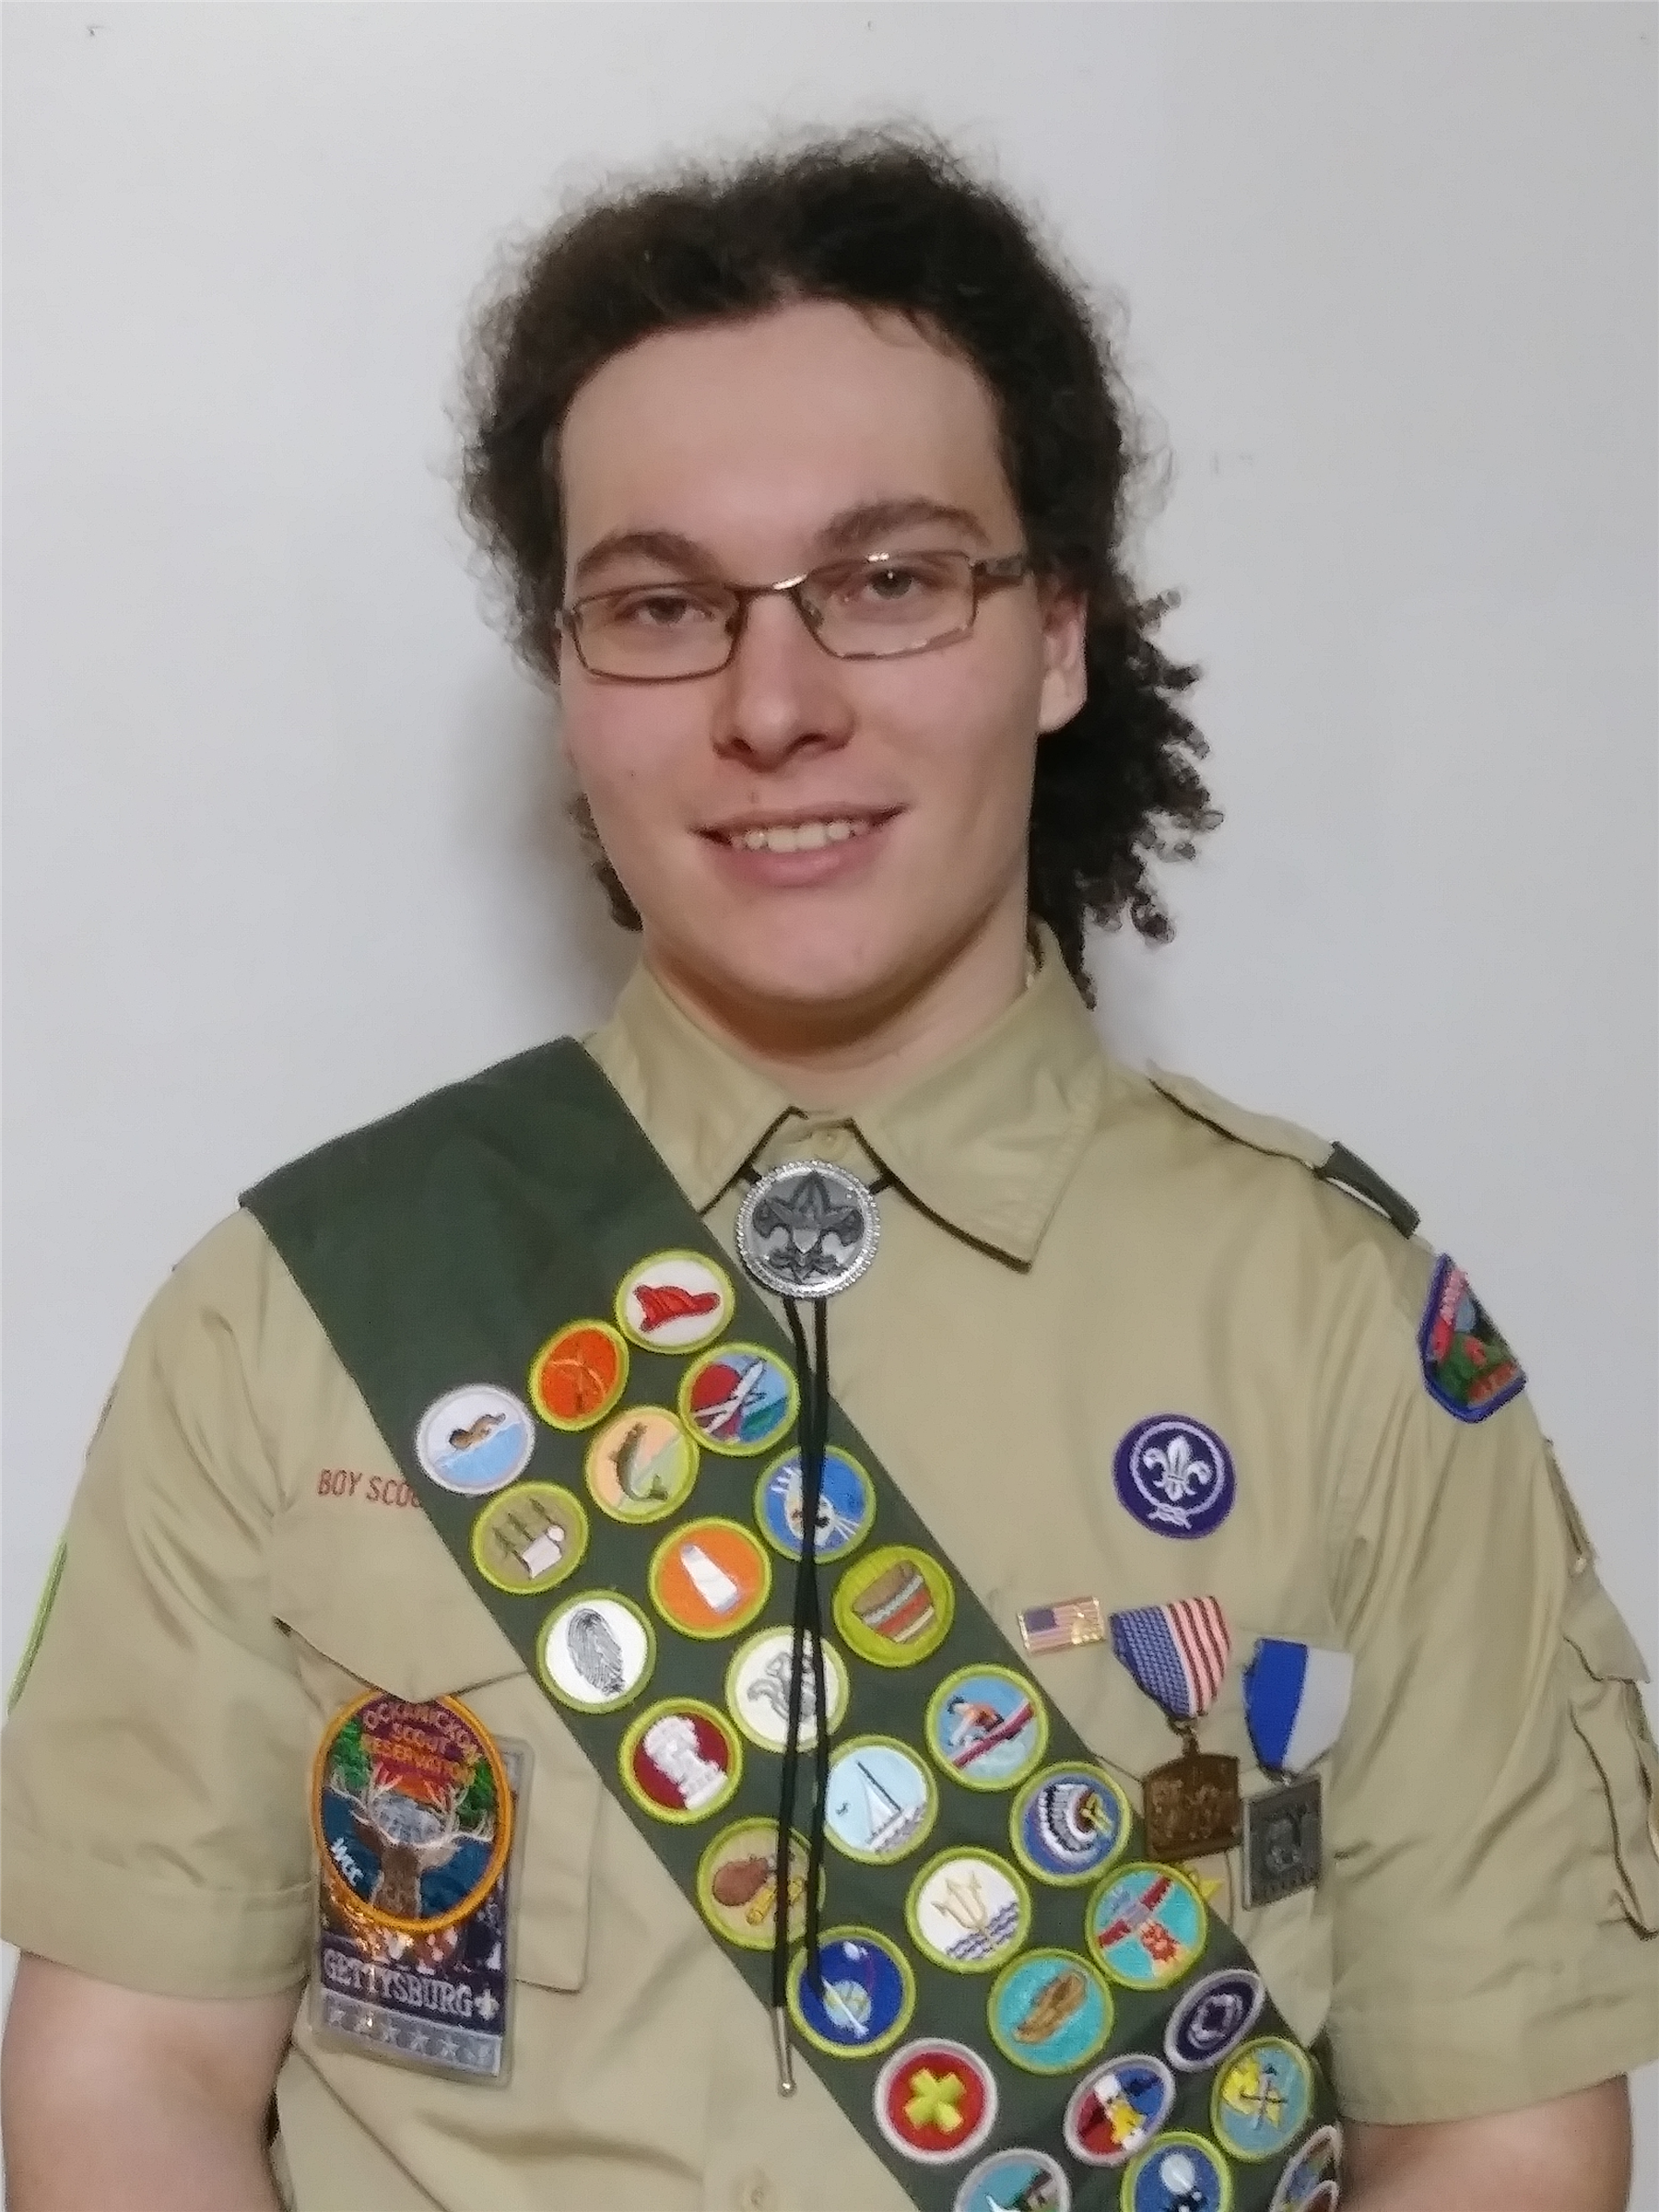 AHPA Student achieved Eagle Scout Rank - Martin Szypulski